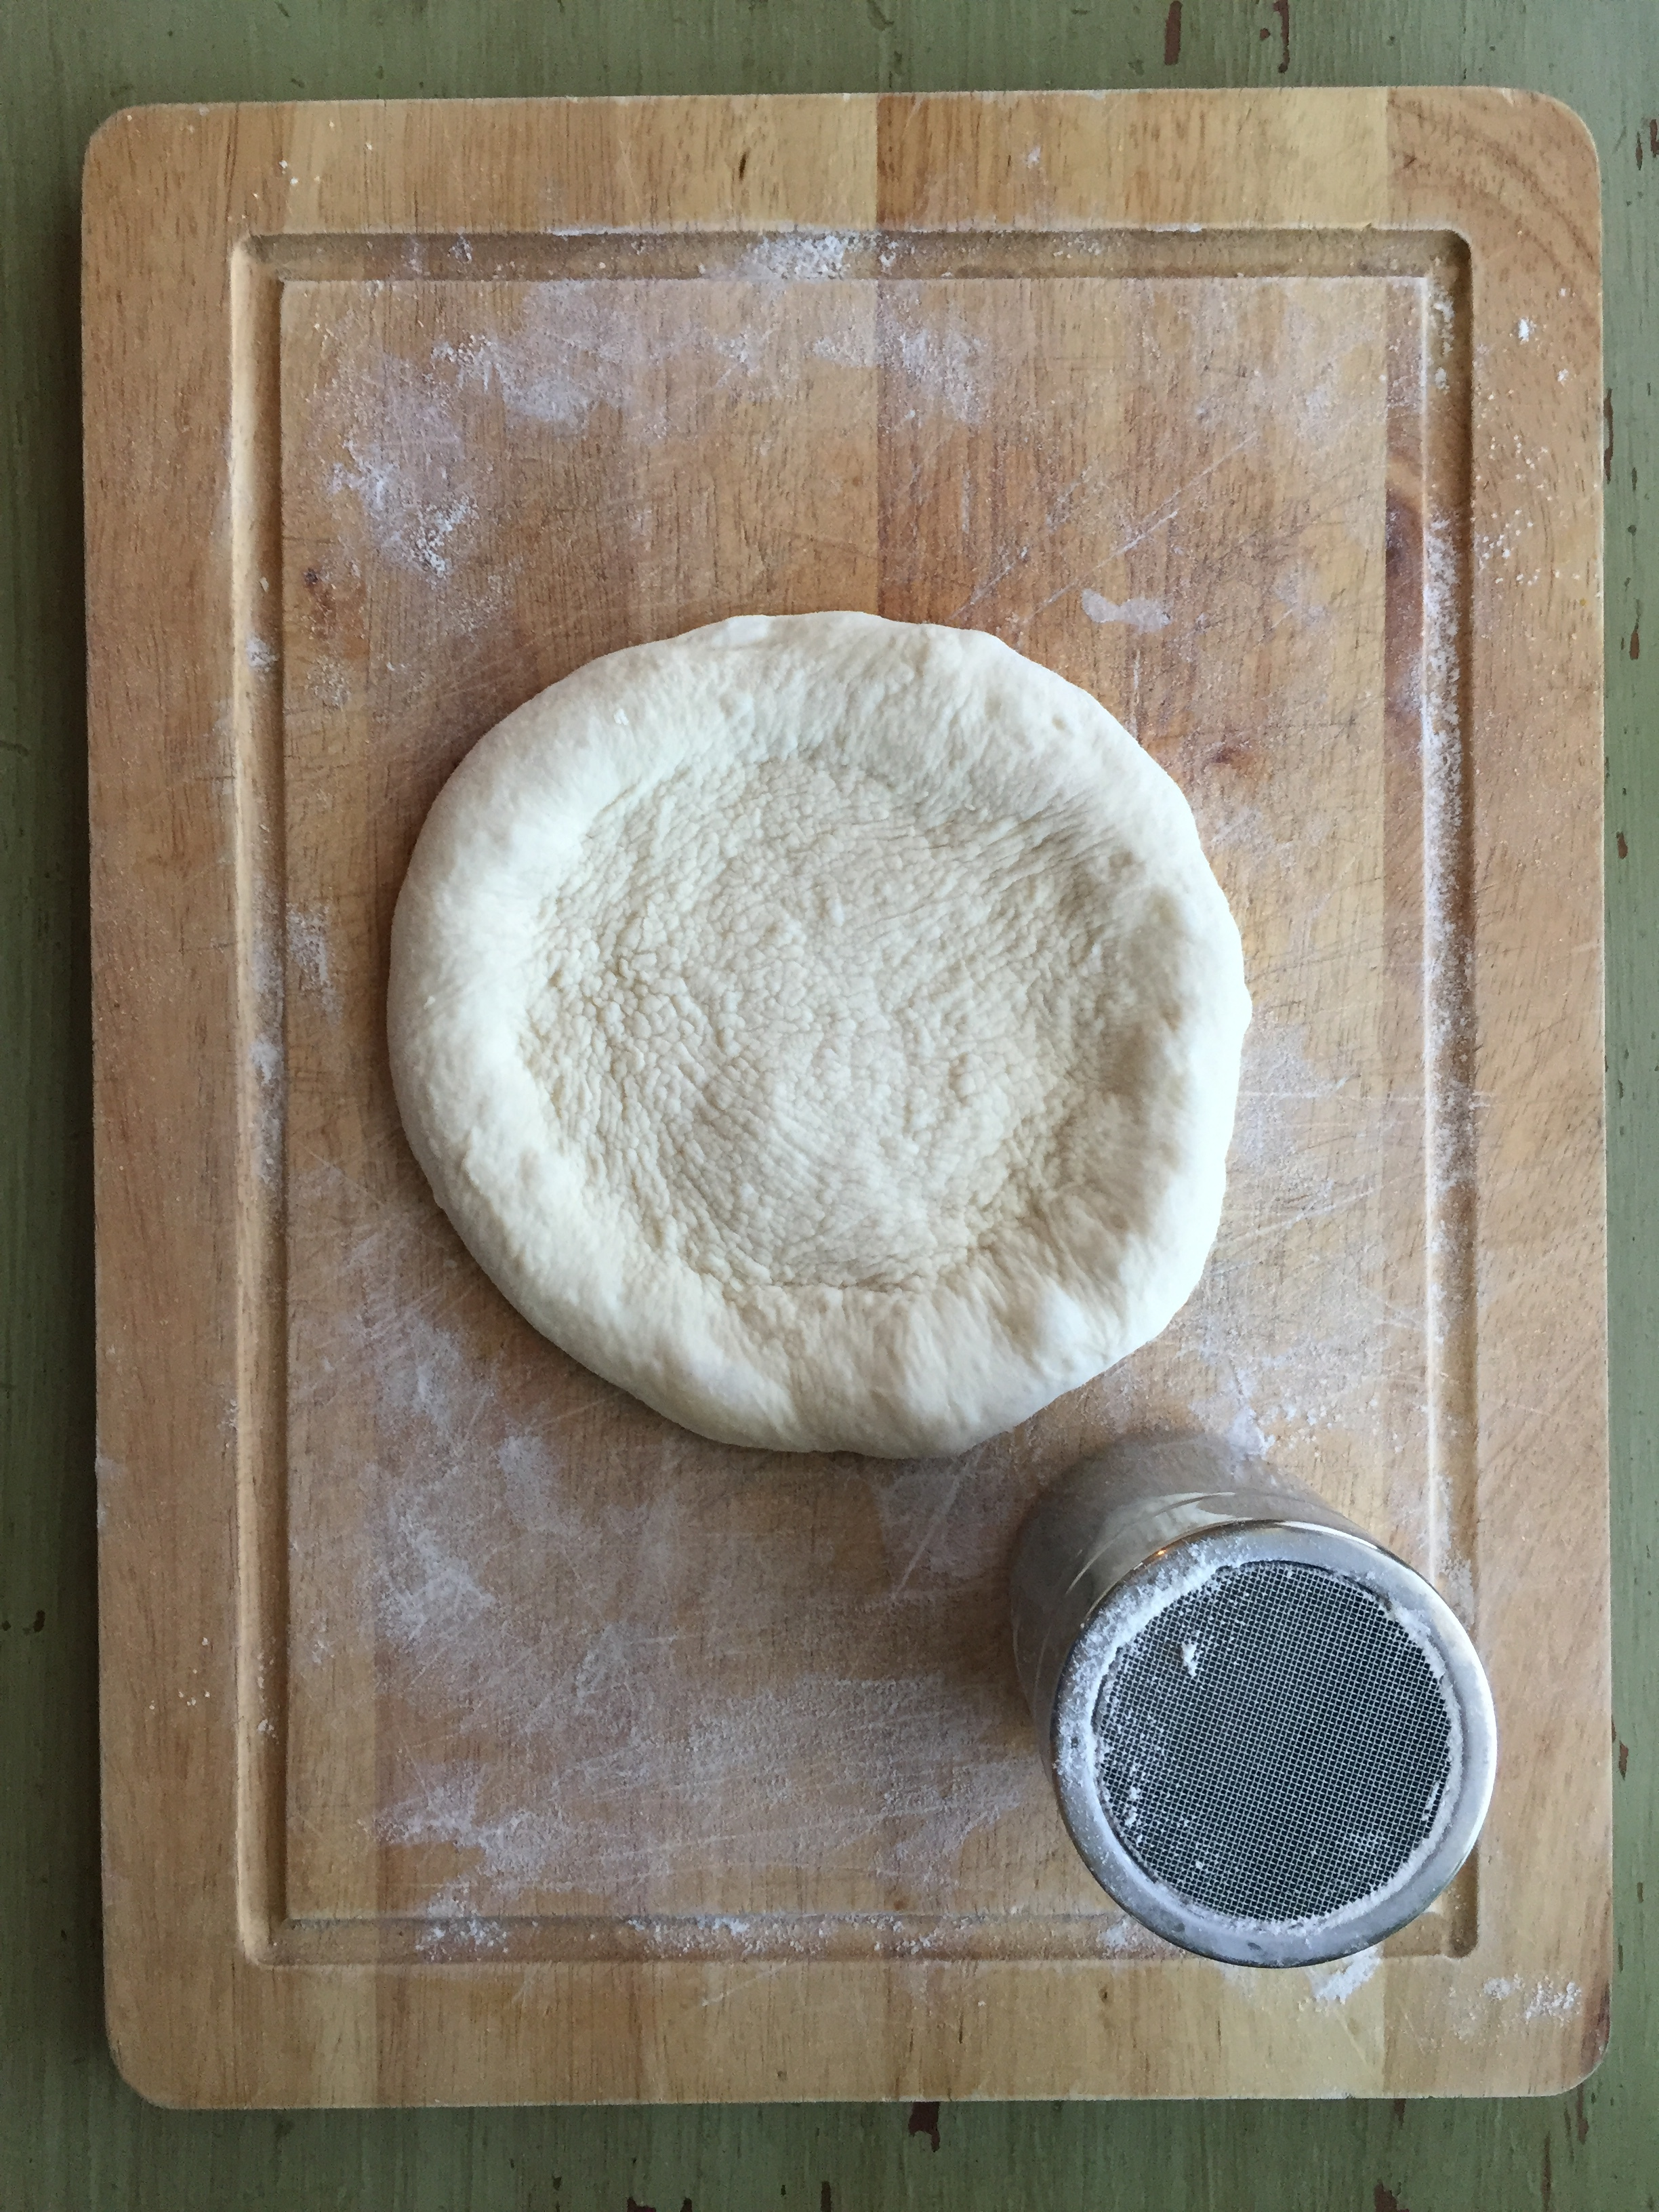 Shaped pizza dough ready for toppings! This dough will stretch out even more after after a few minutes rest.